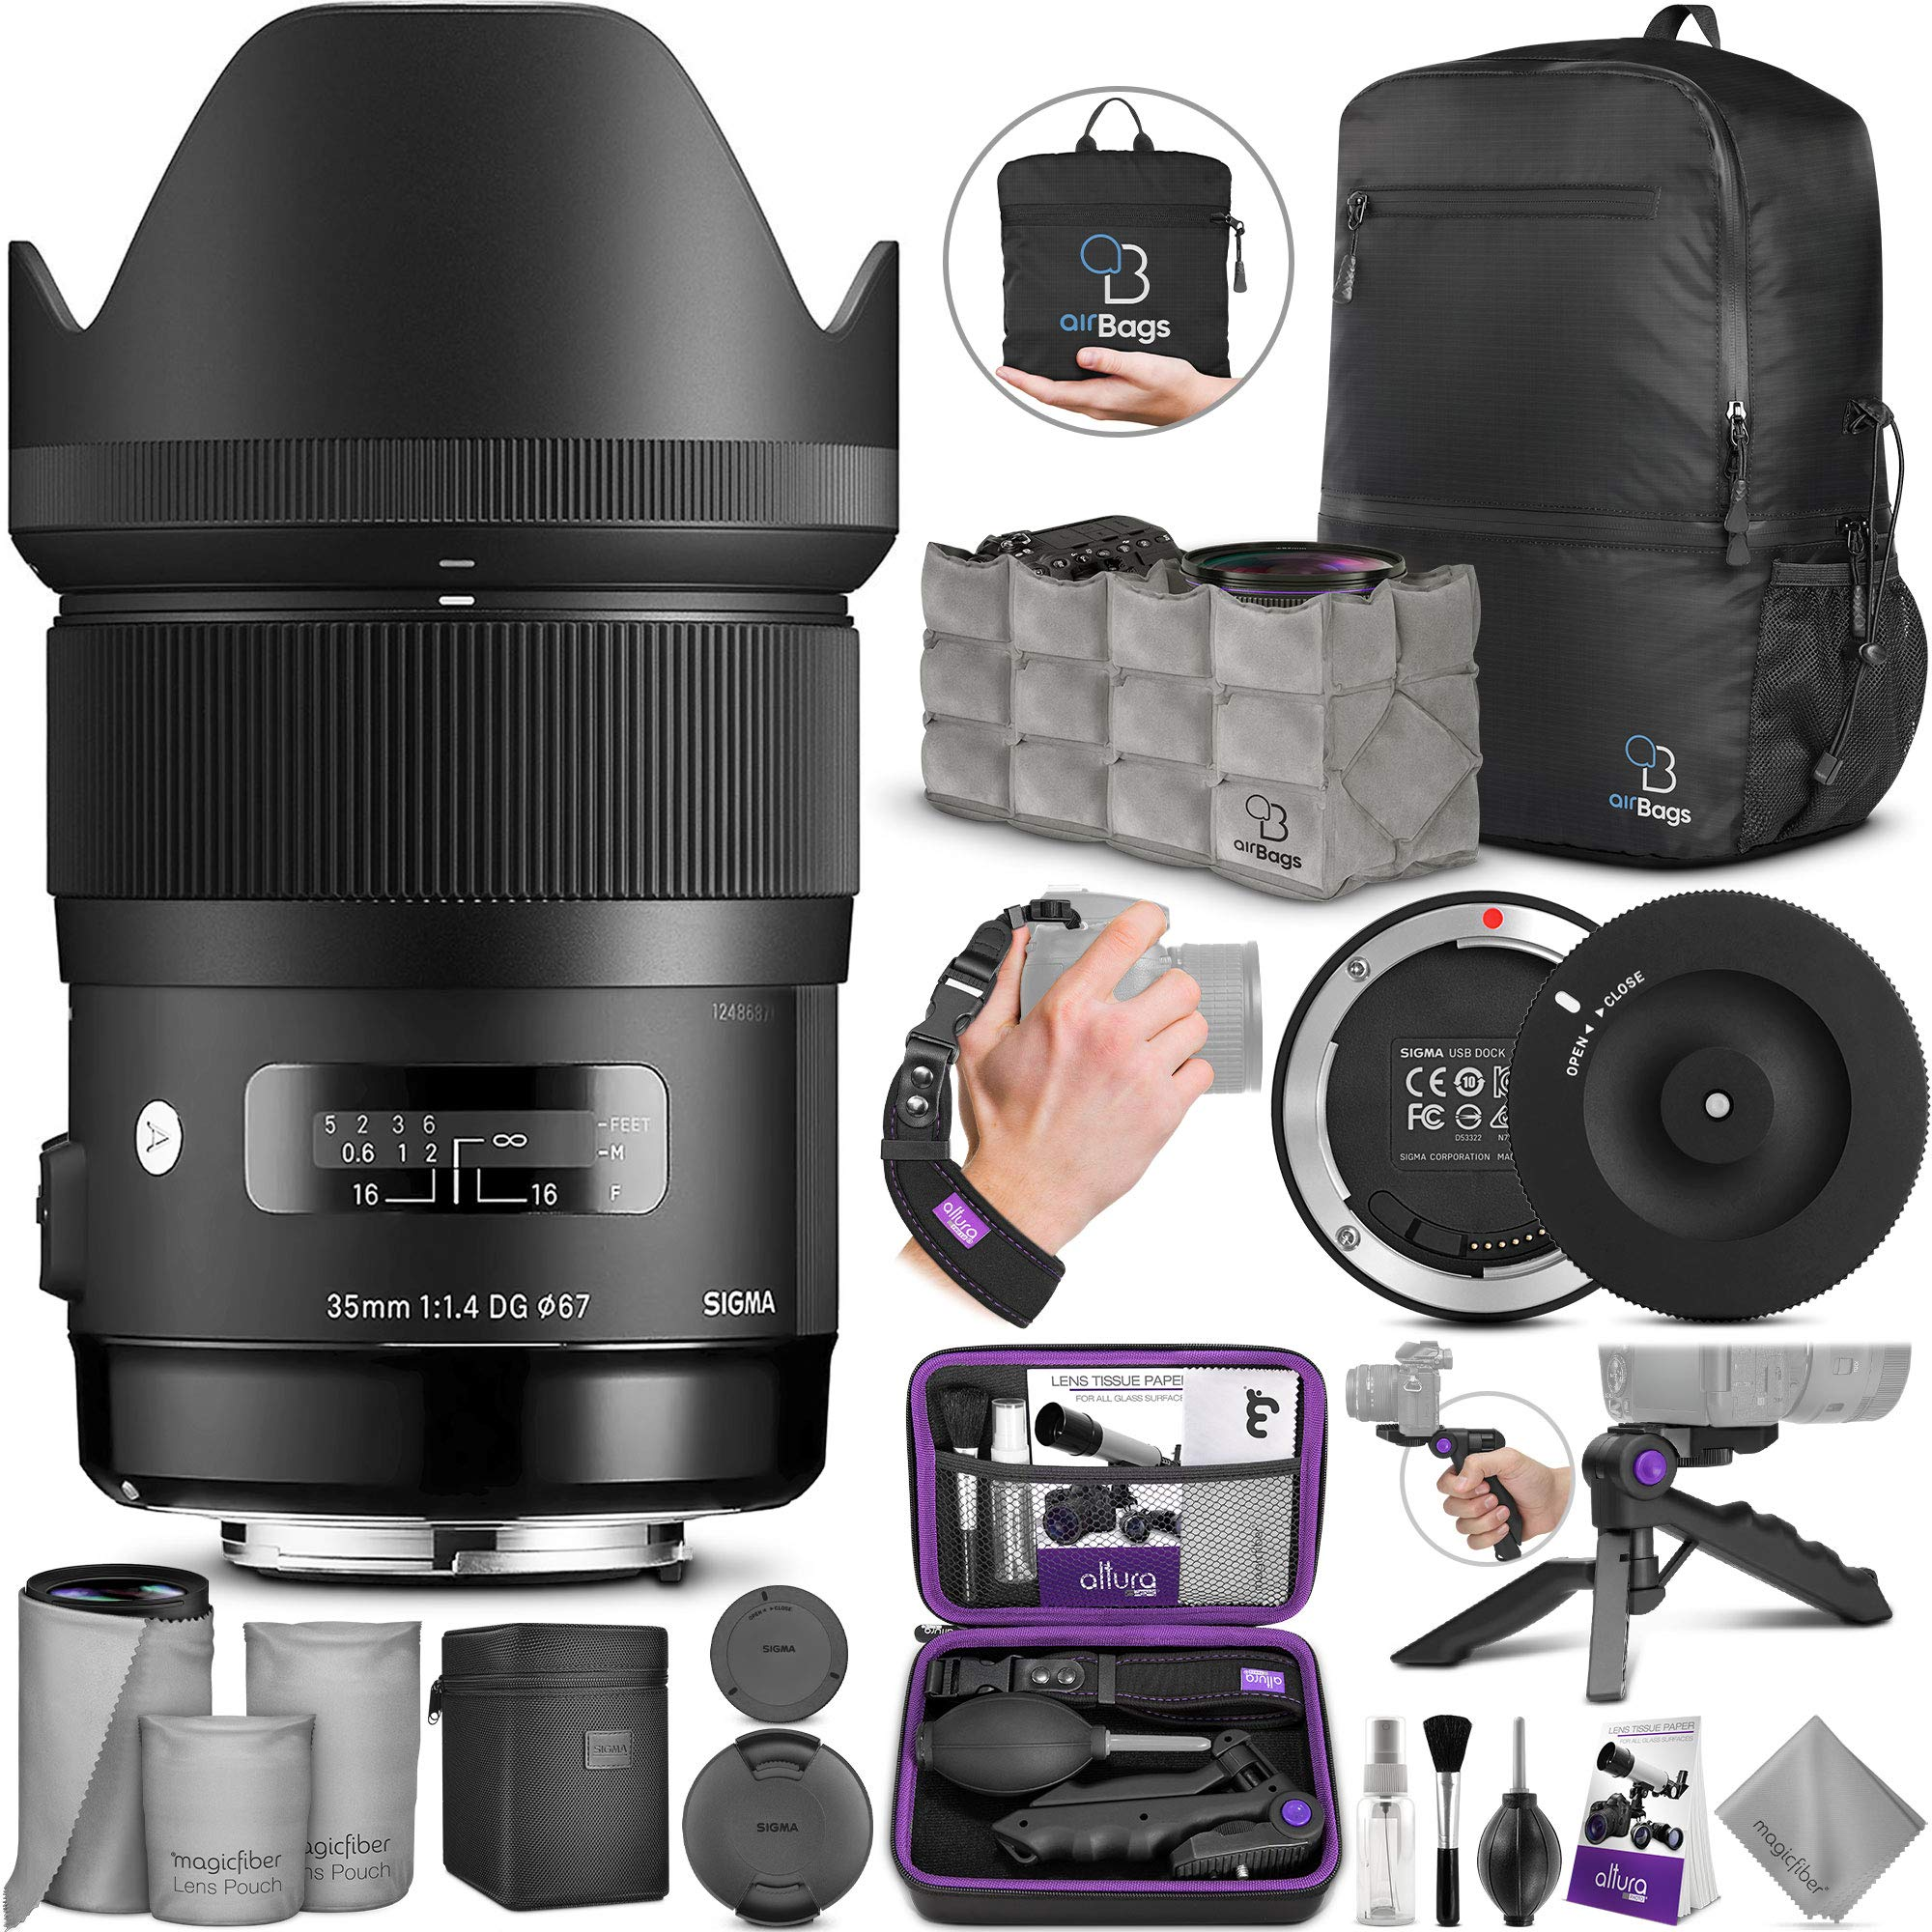 Sigma 35mm F1.4 Art DG HSM Lens for Nikon DSLR Cameras + Sigma USB Dock with Altura Photo Essential Accessory and Travel Bundle by Sigma